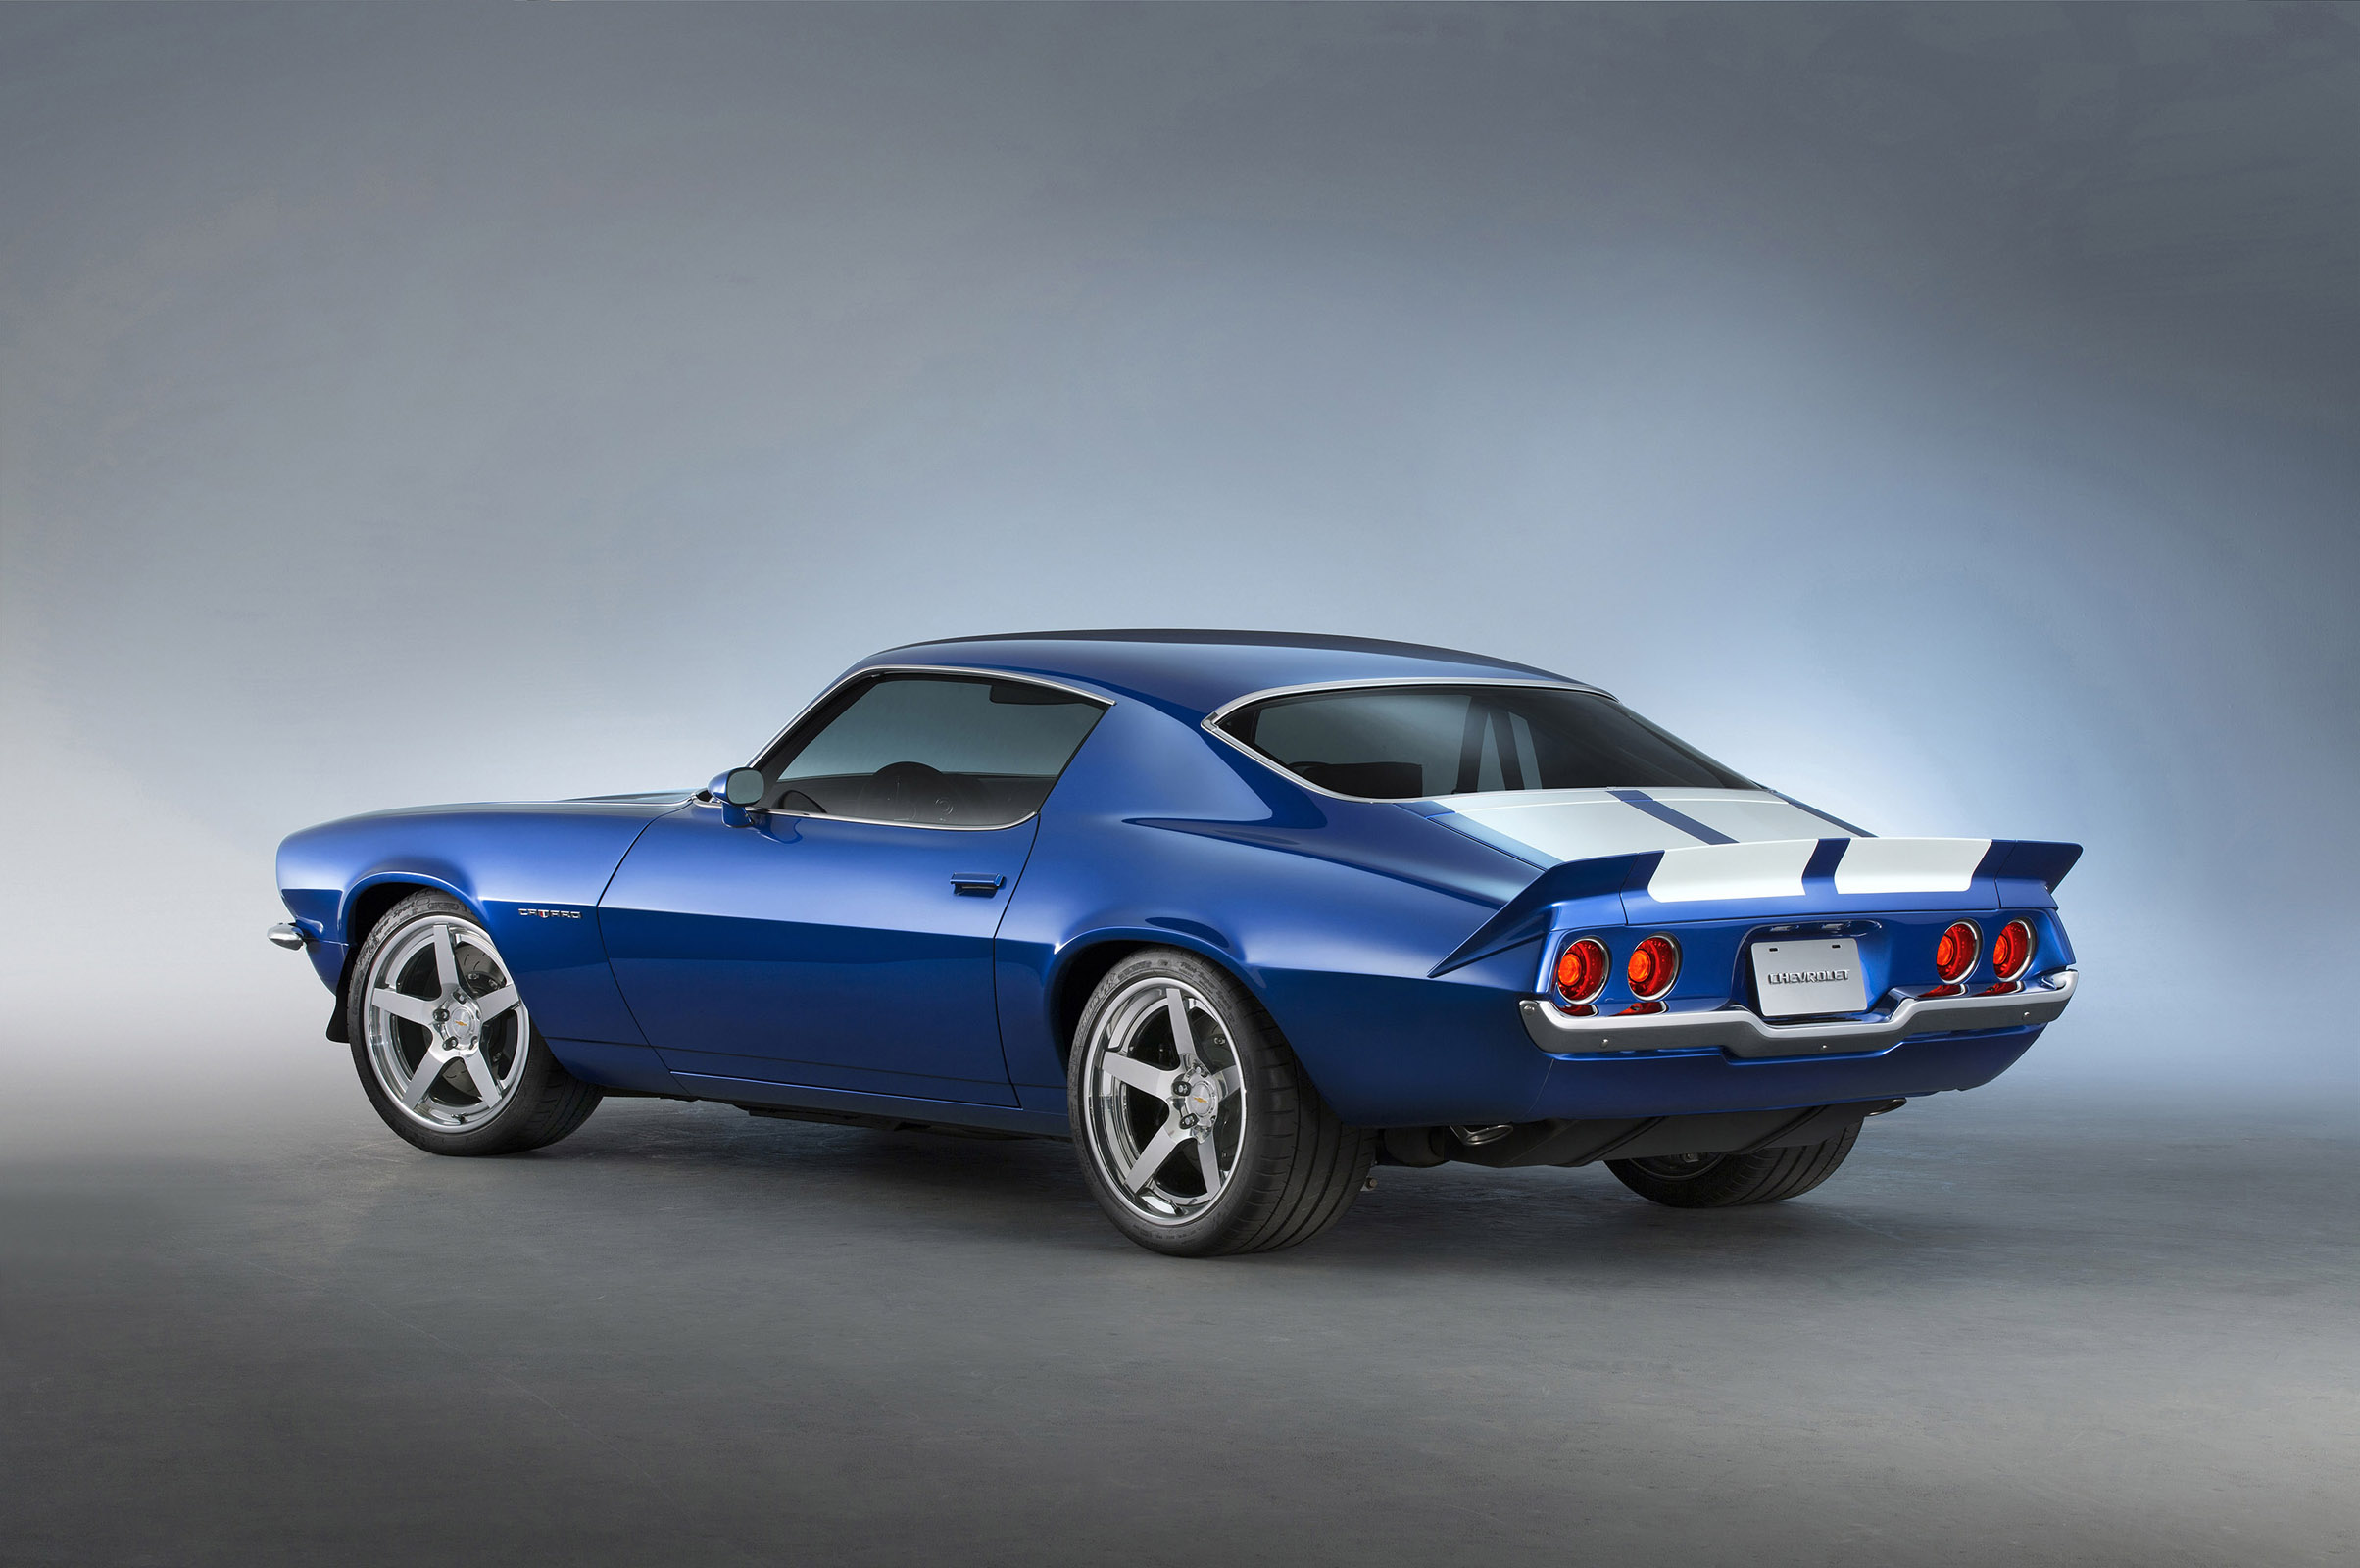 1970 Chevrolet Camaro RS Supercharged LT4